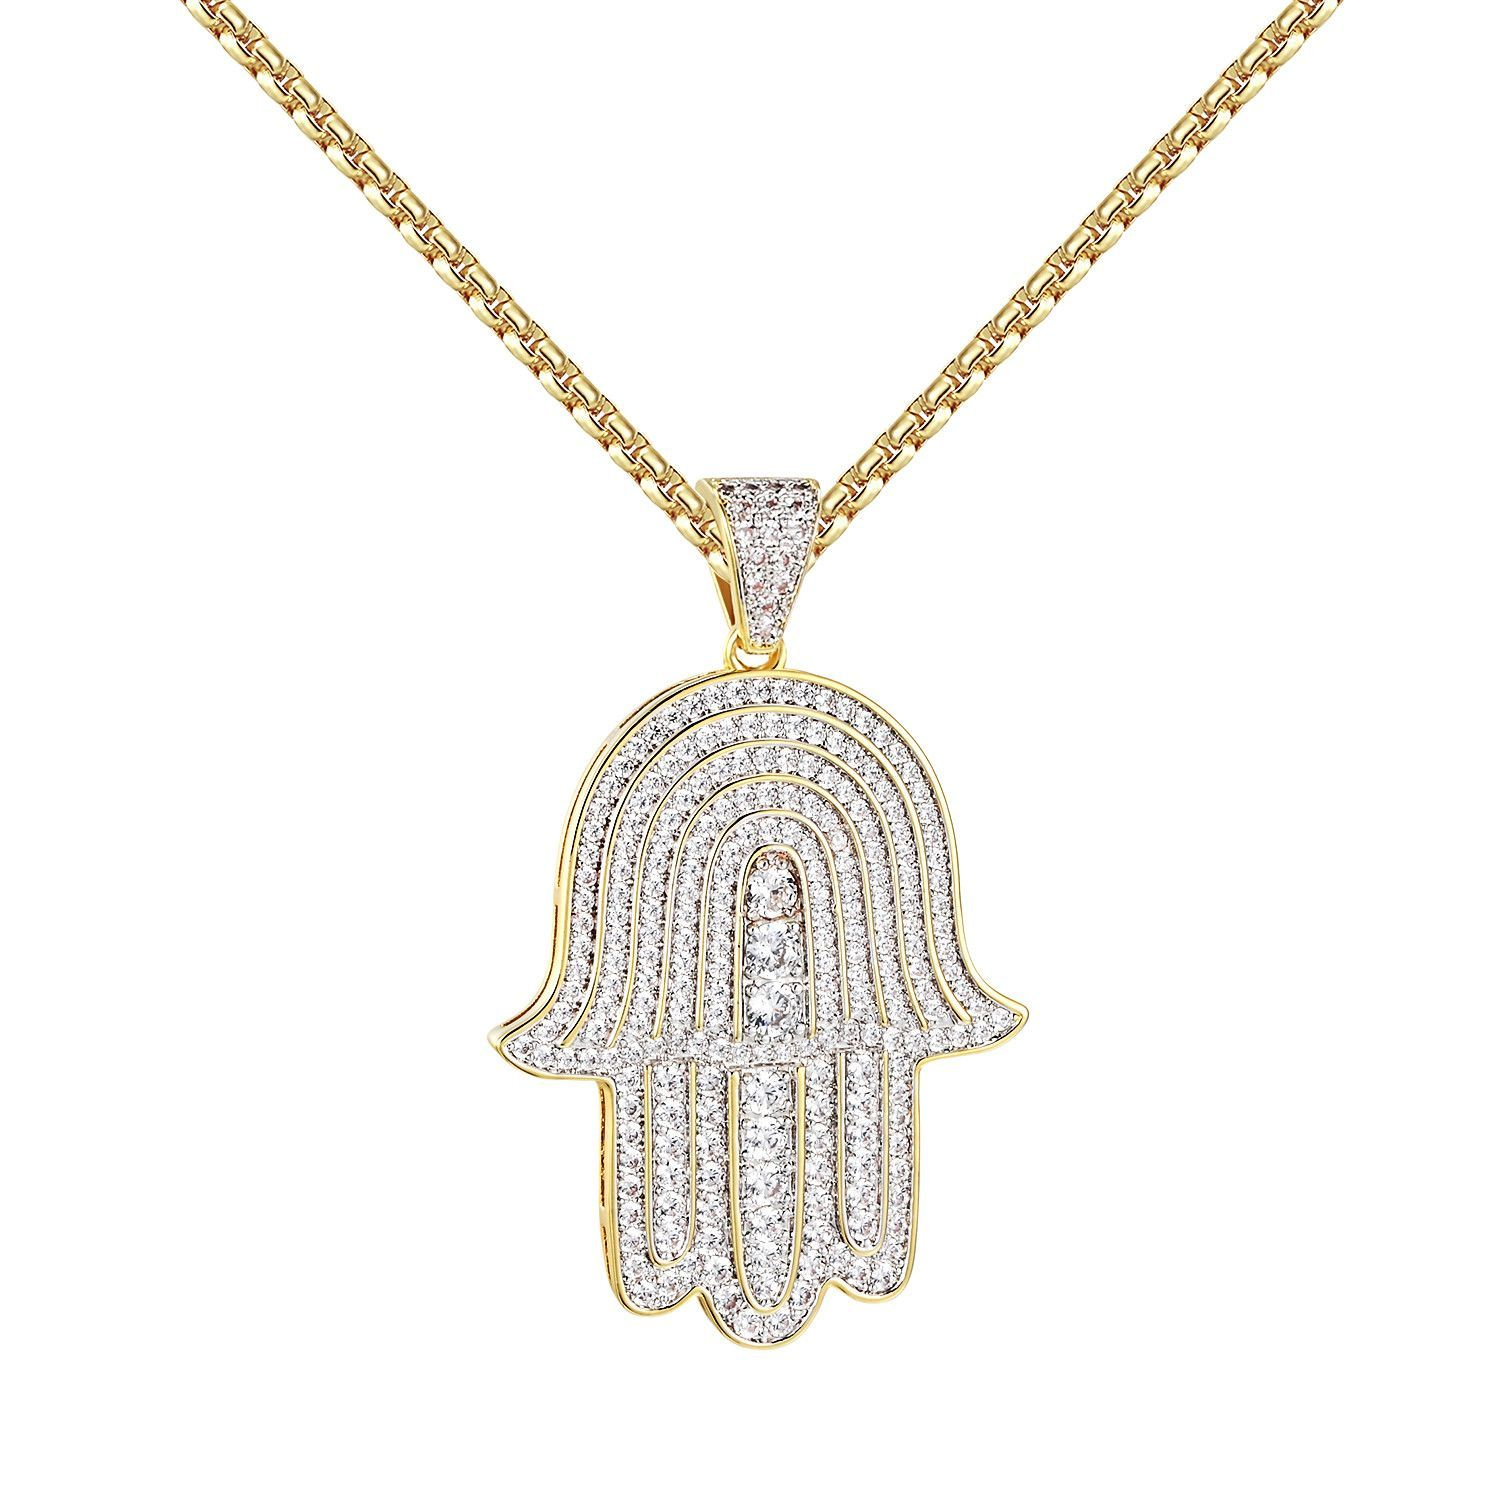 Solitaire hamsa hand pendant 14k gold over sterling silver 24 solitaire hamsa hand pendant 14k gold over sterling silver 24 chain iced out aloadofball Images